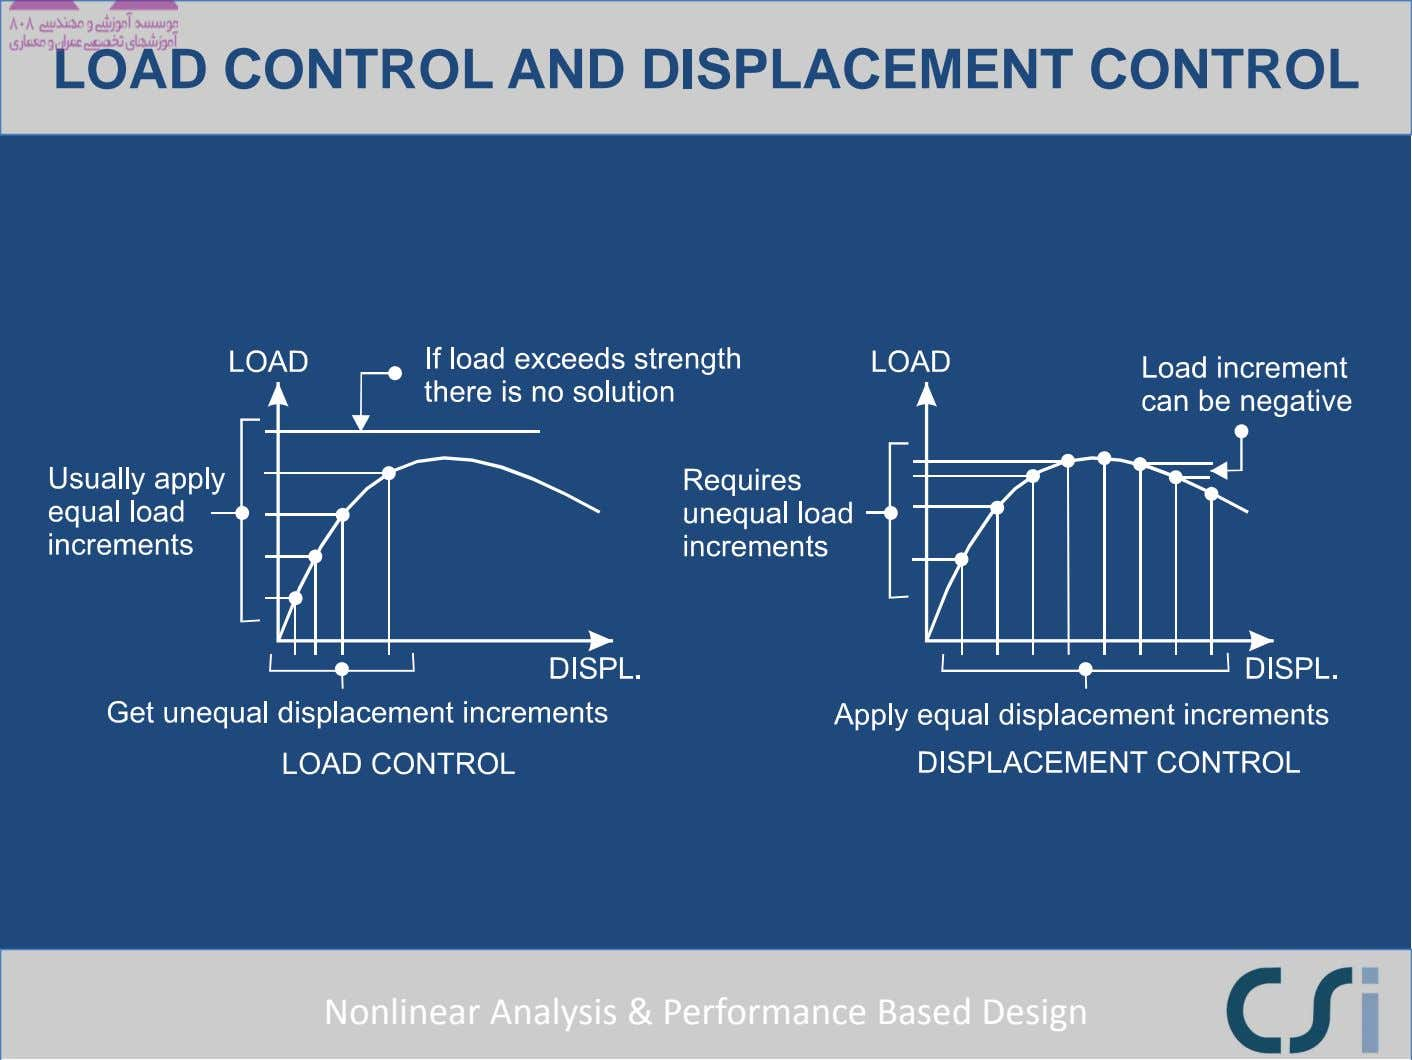 LOAD CONTROL AND DISPLACEMENT CONTROL Nonlinear Analysis & Performance Based Design